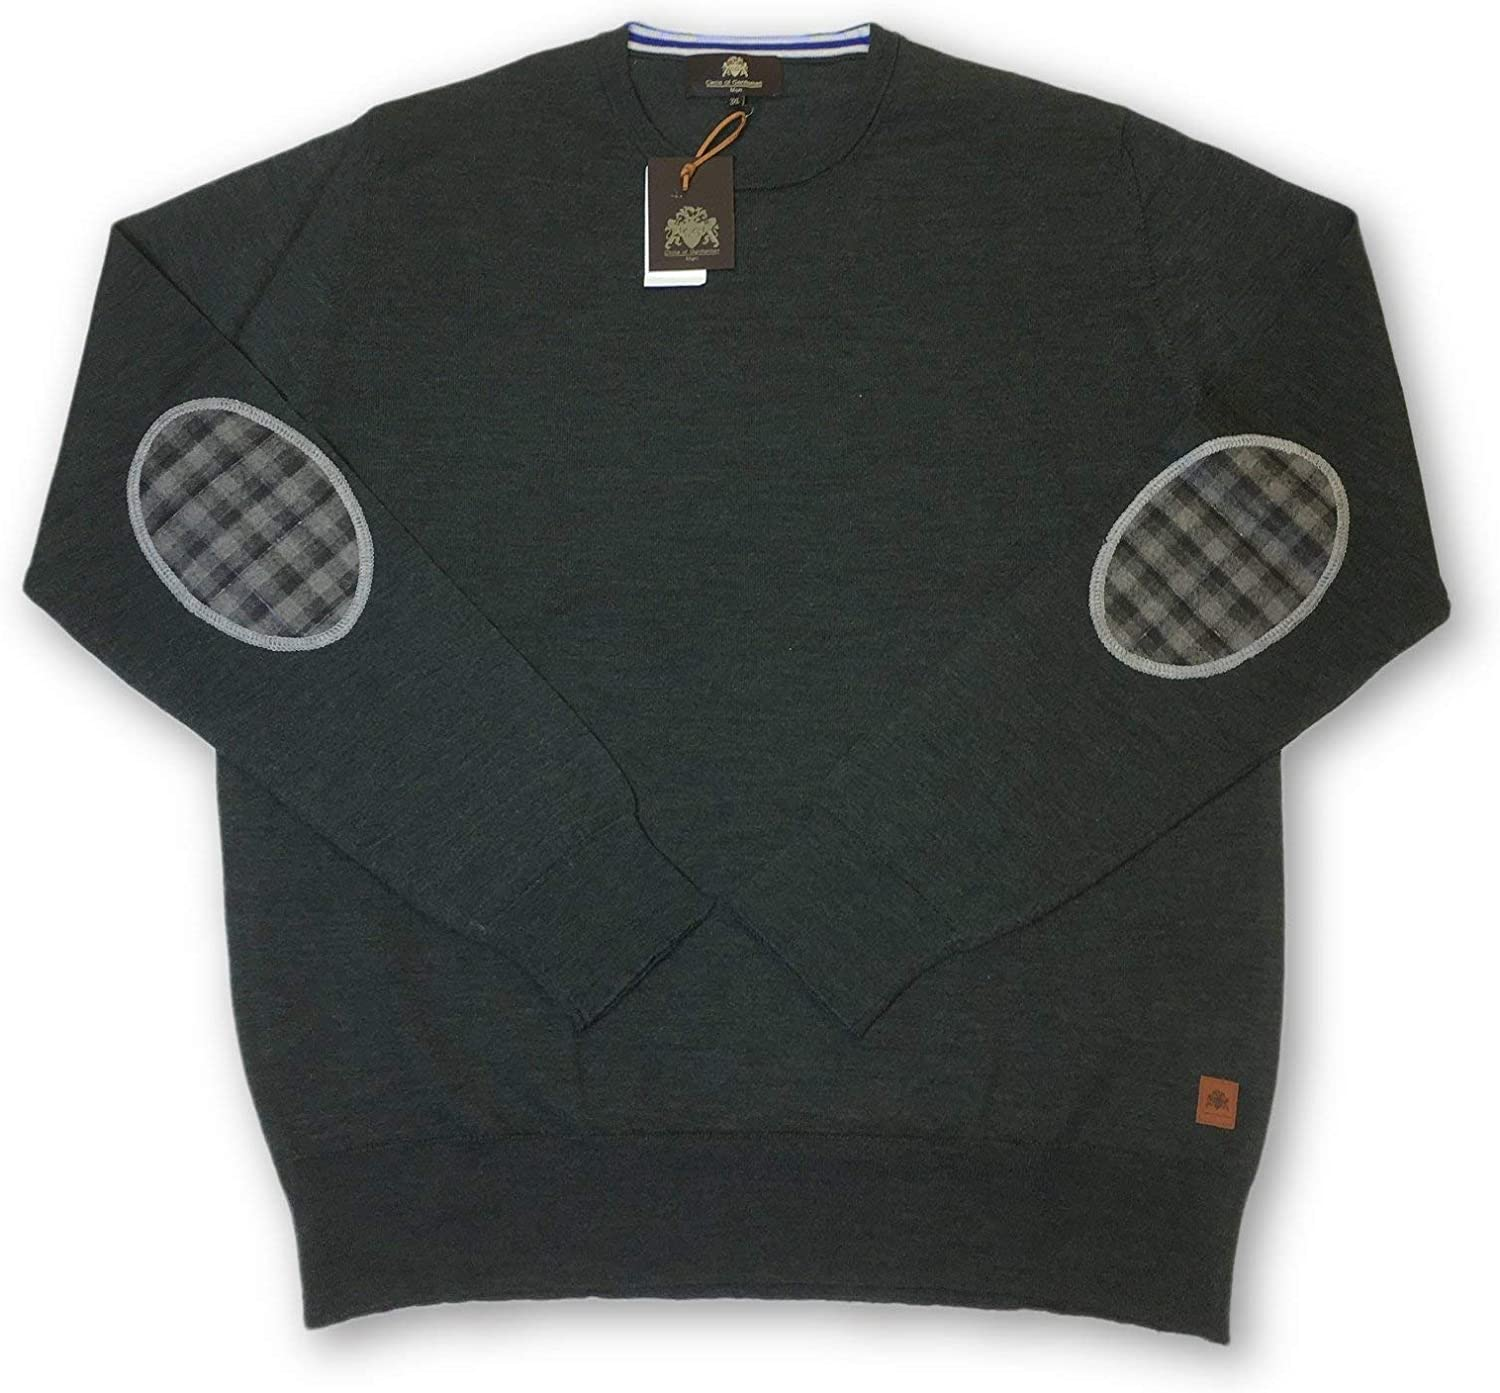 Circle of Gentlemen 'Hadwin' Knitwear in Green Size XXXL Leather